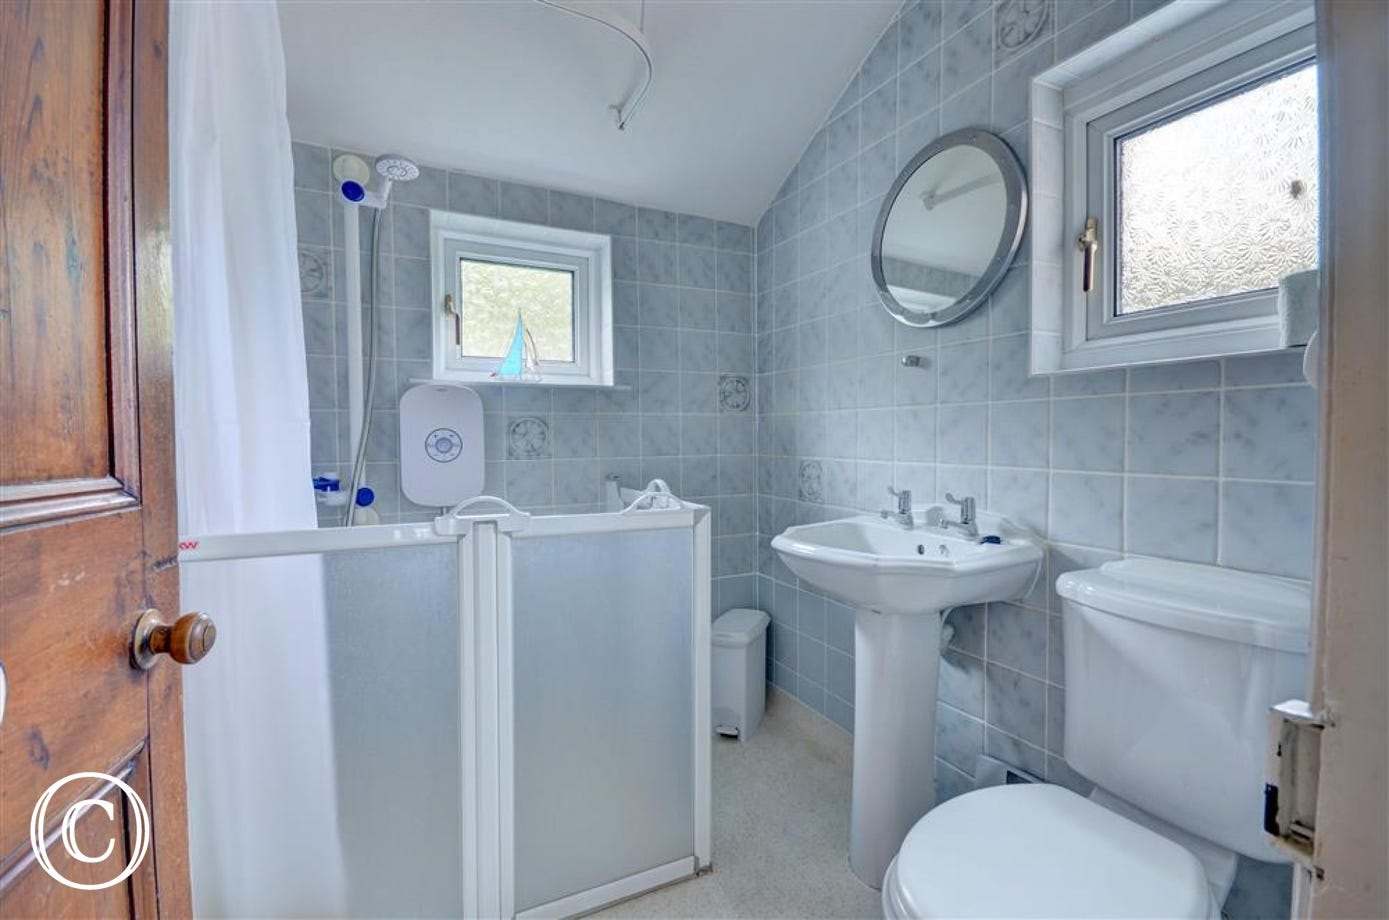 Wet Room has walk-in shower with a seat, toilet and washbasin.